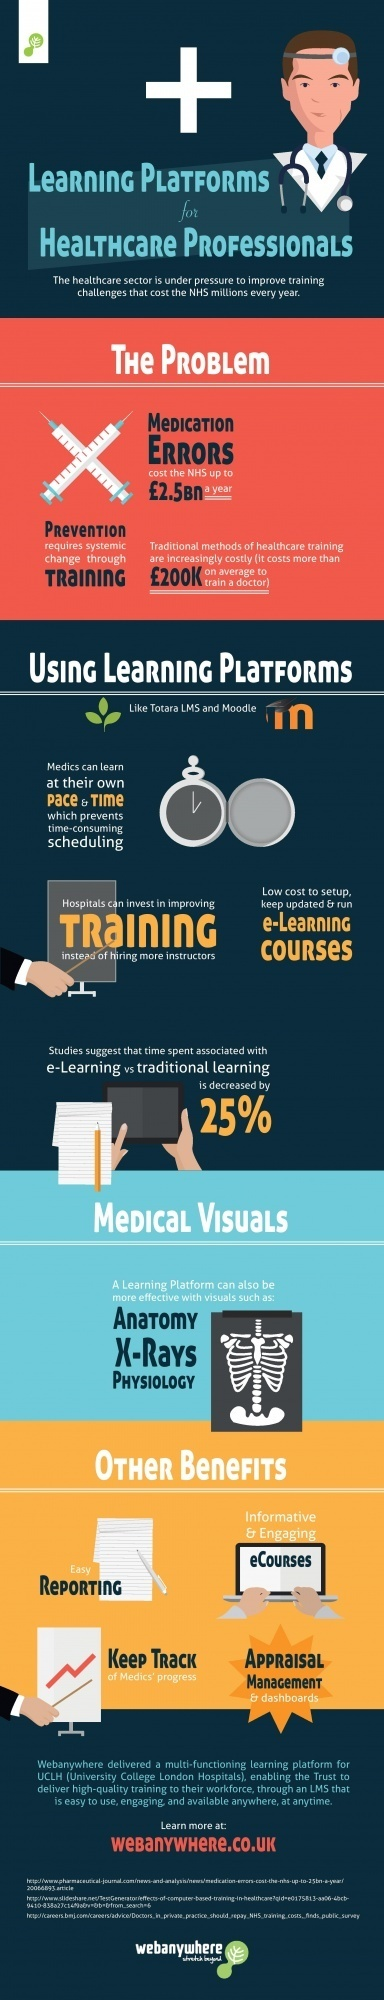 Learning Platforms for Healthcare Professionals Infographic